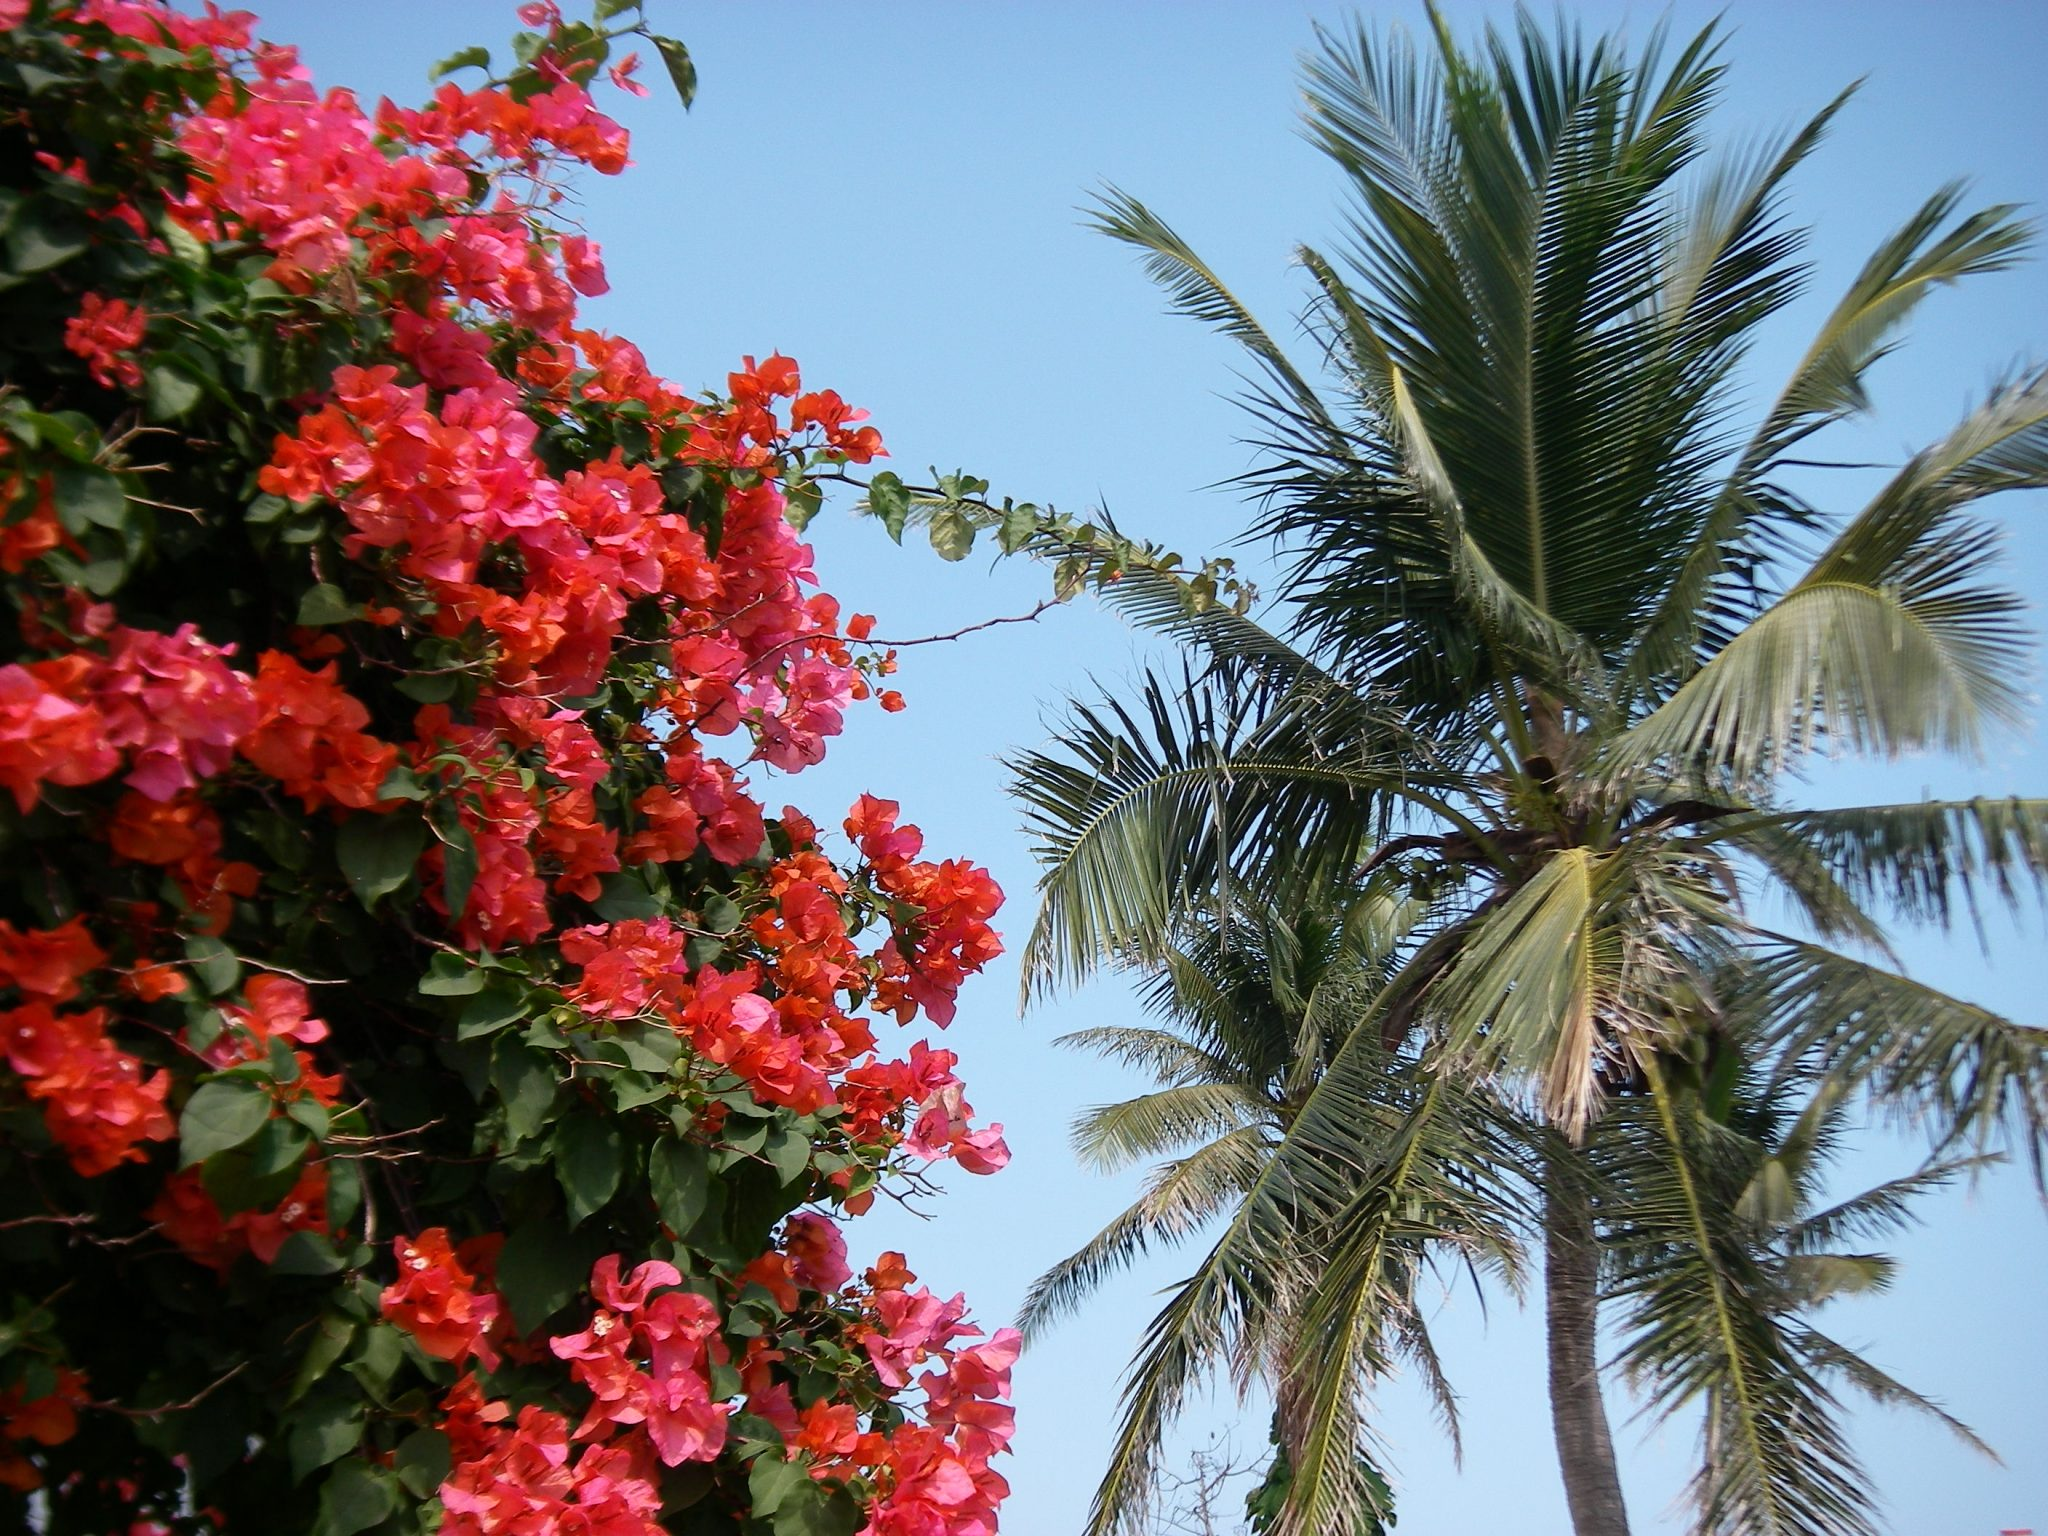 90-palm-trees-and-flowers-were-everywhere-in-this-beautiful-tropical-paradisejpg